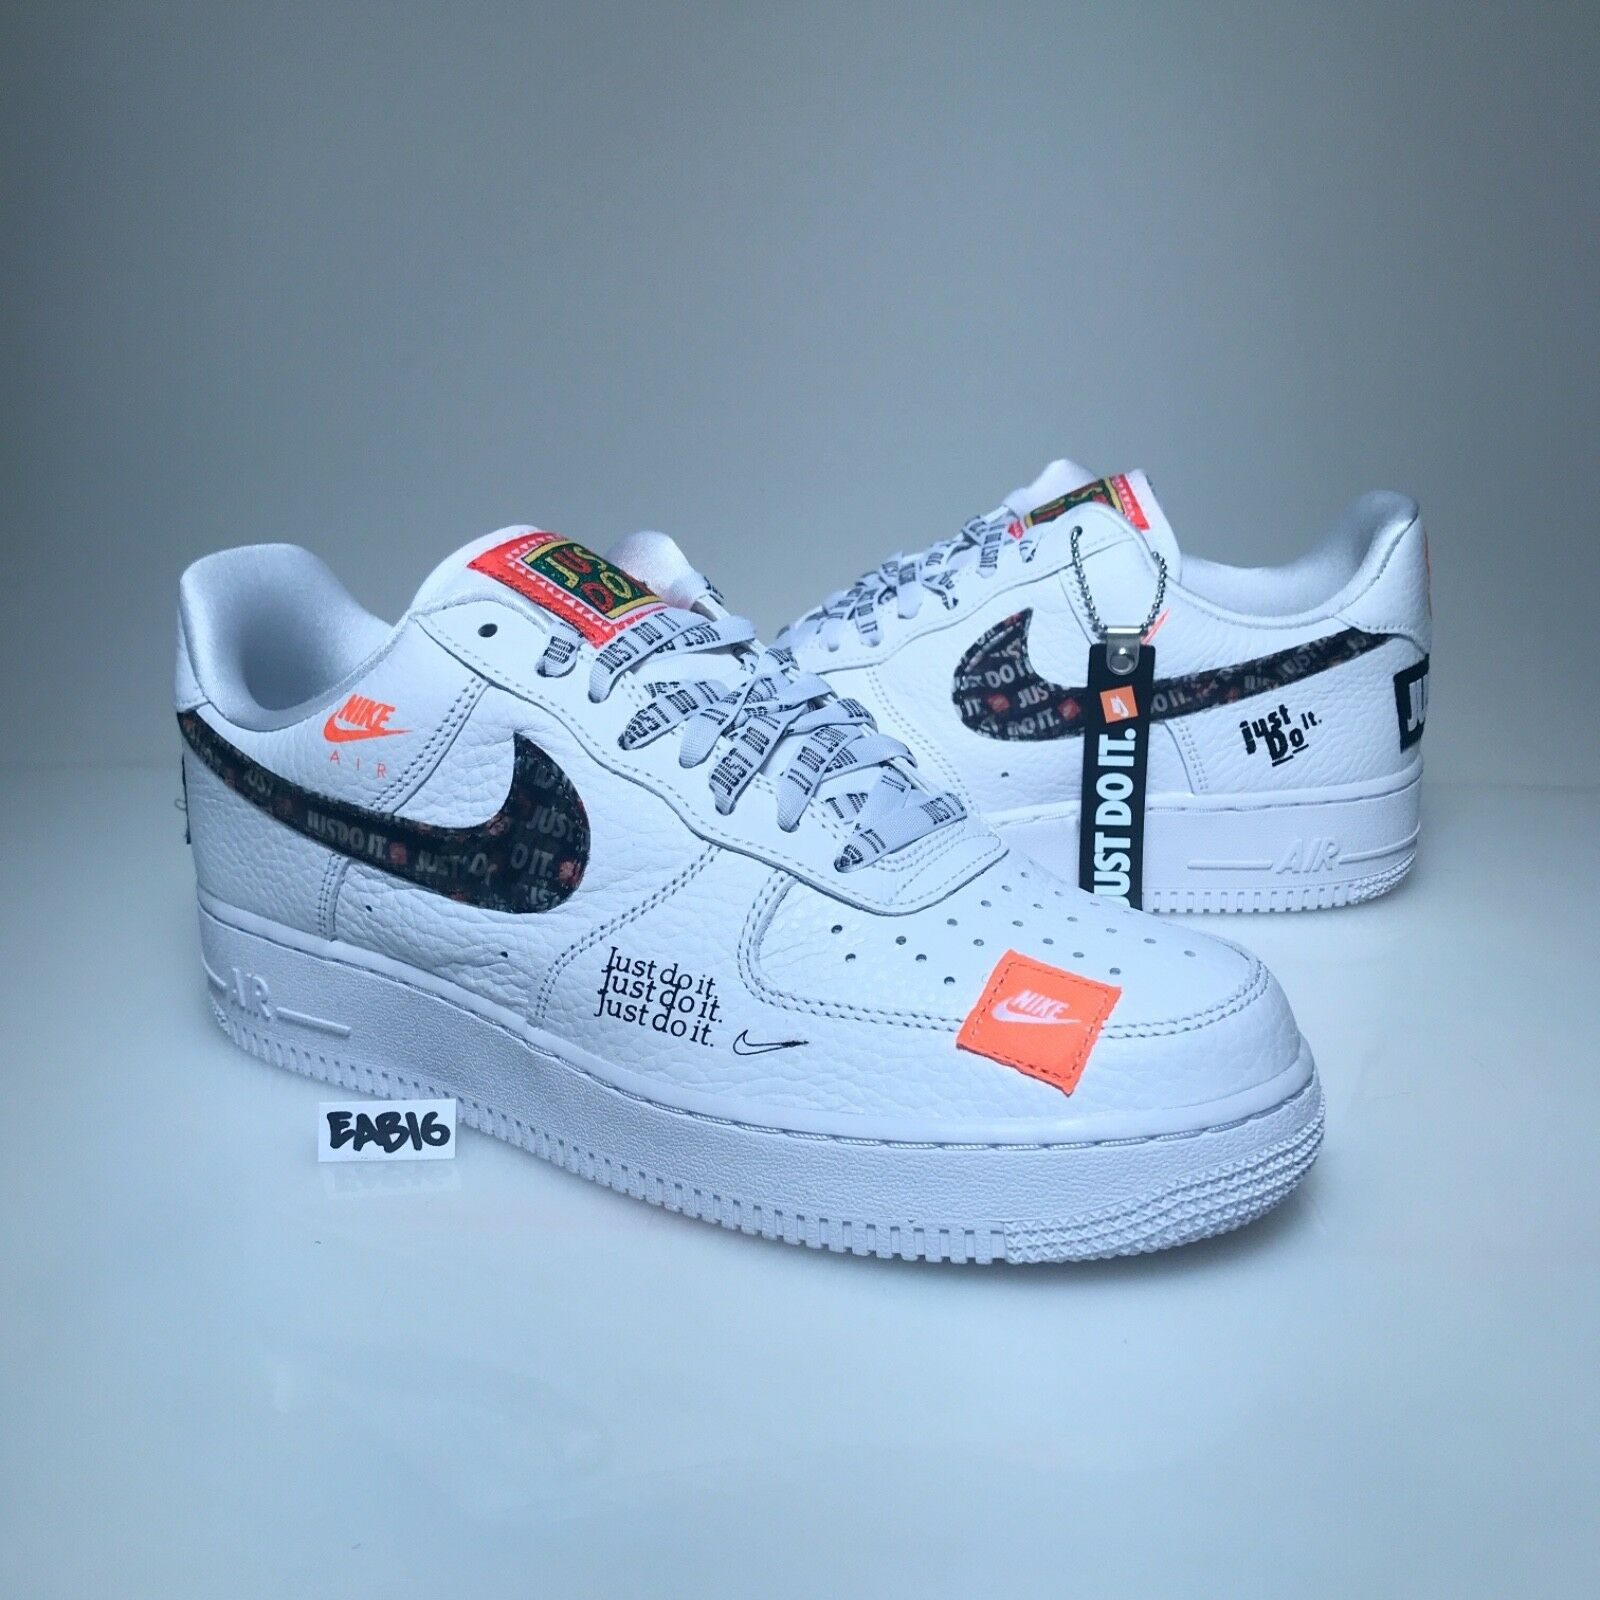 Nike Air Force 1 One Low 07 PRM JDI Just Do It White Black orange AF1 AR7719 100